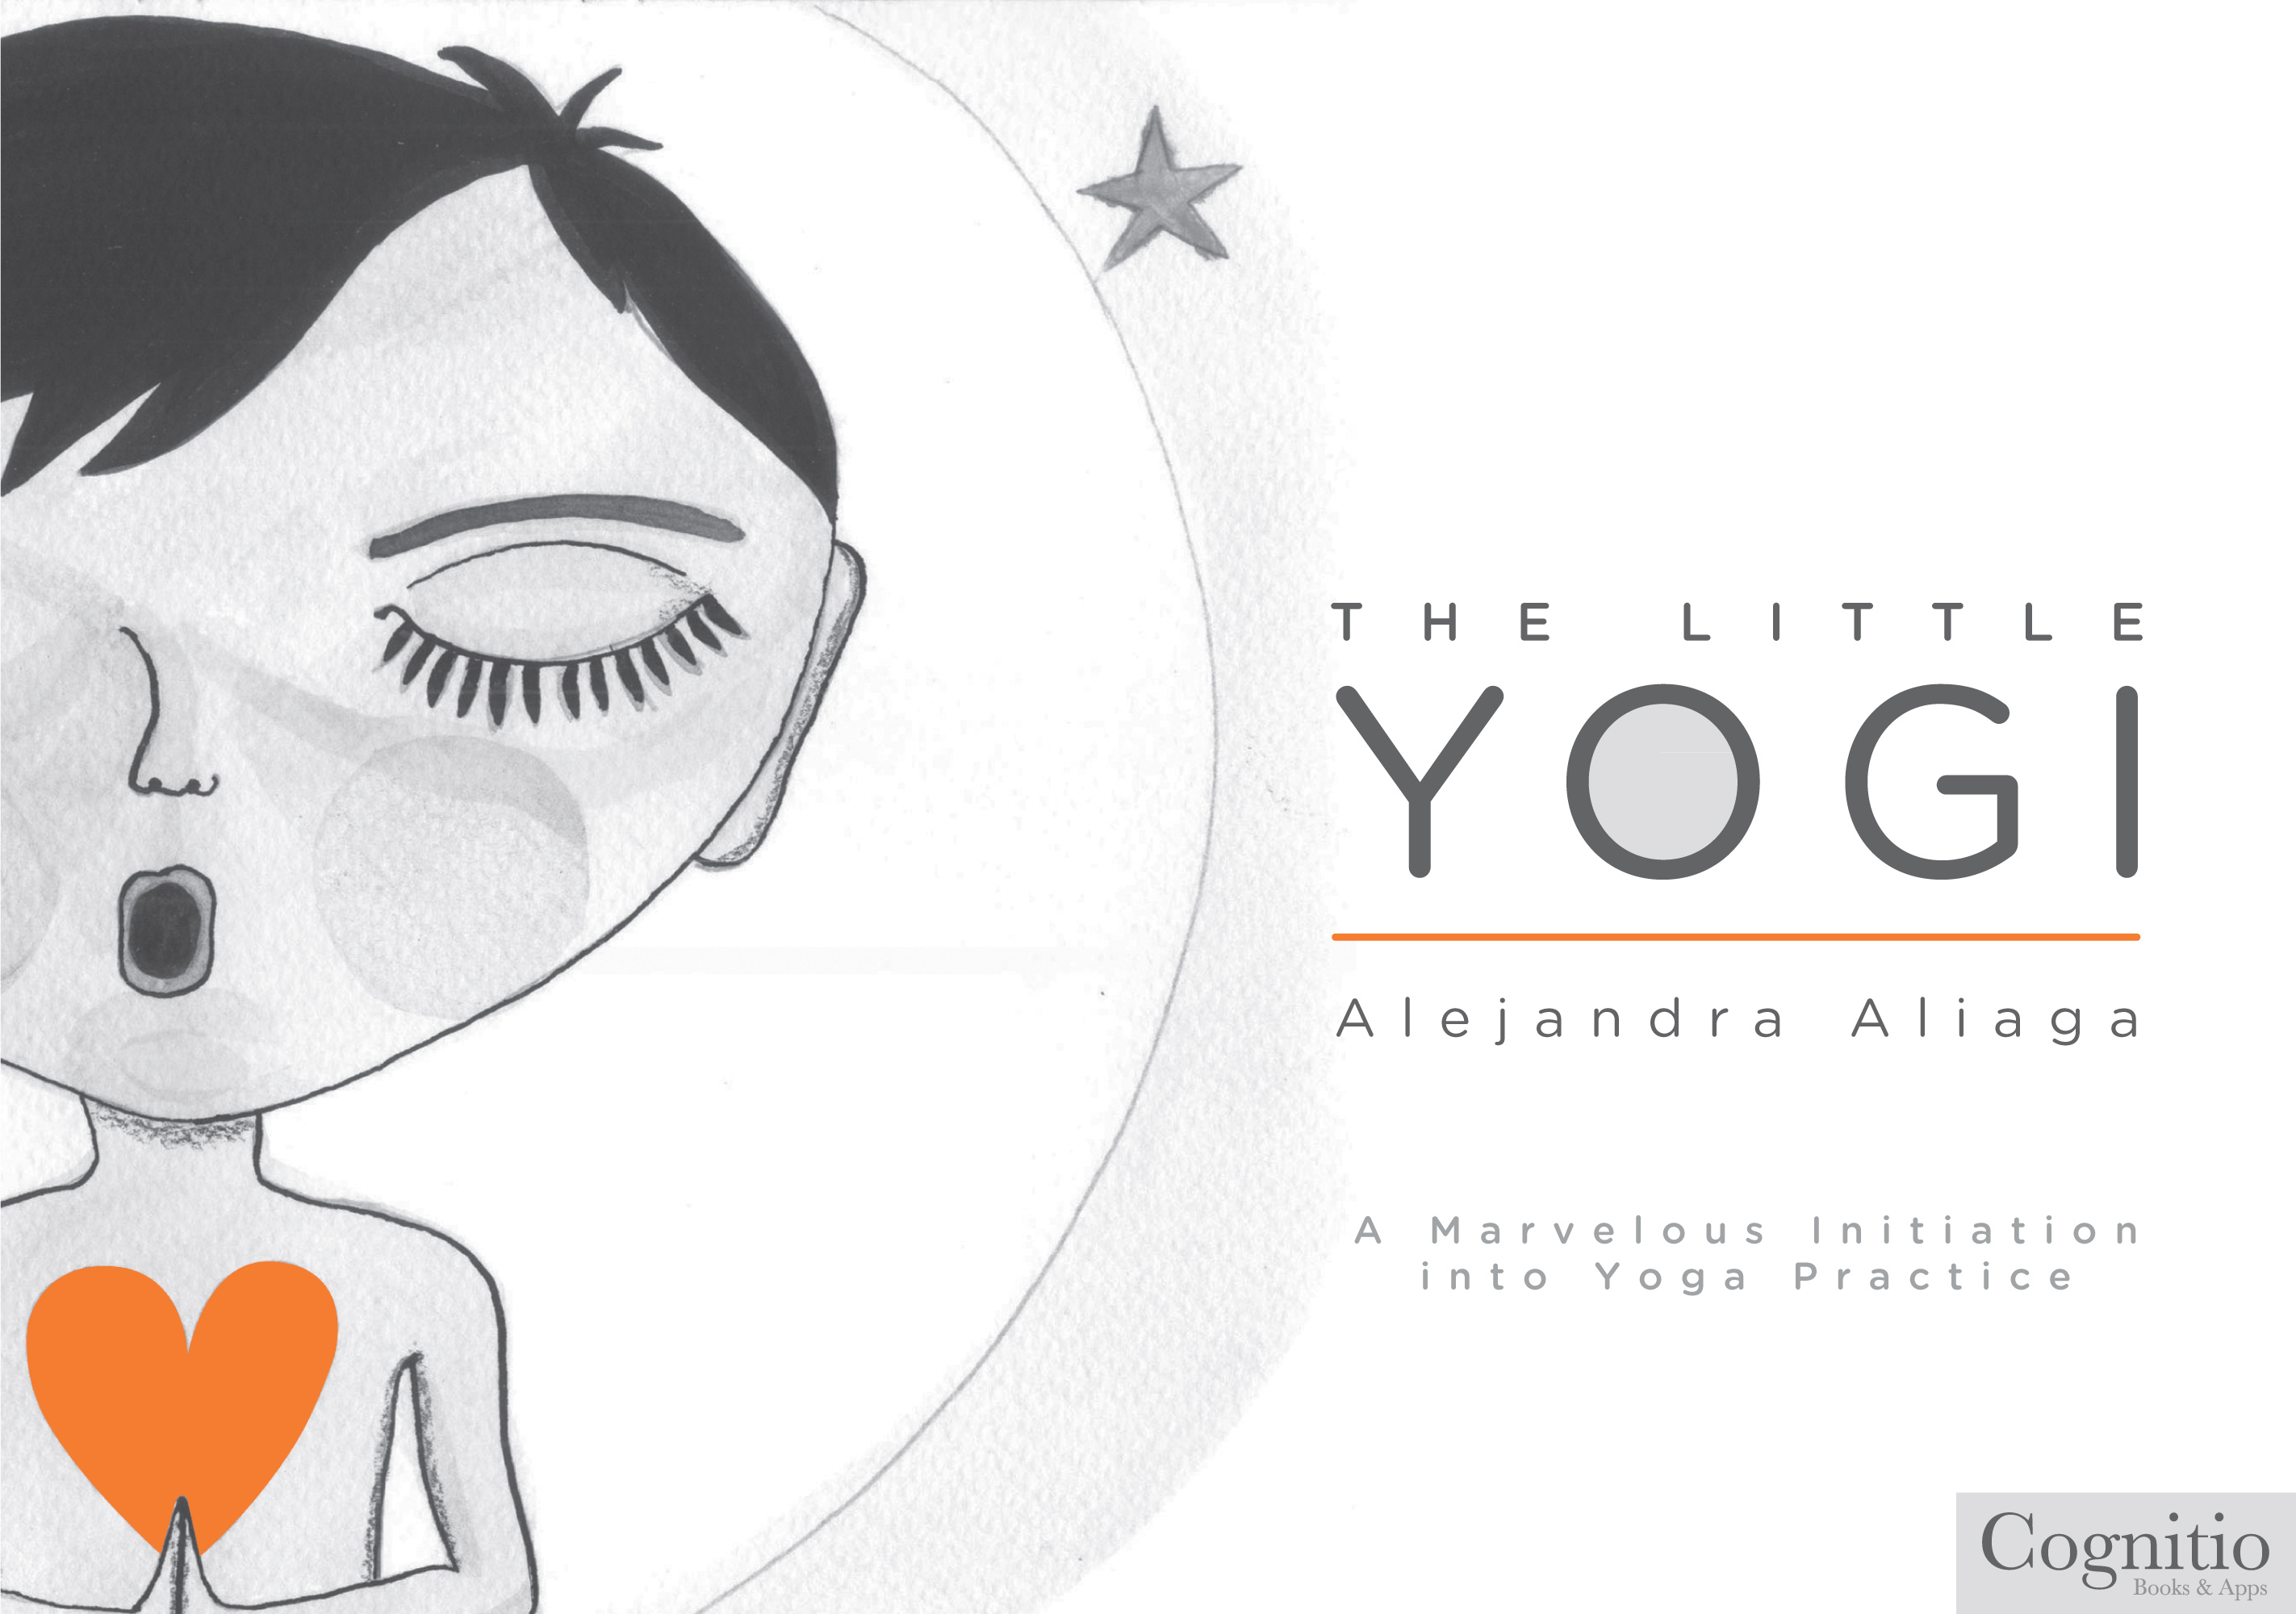 The Little Yogi